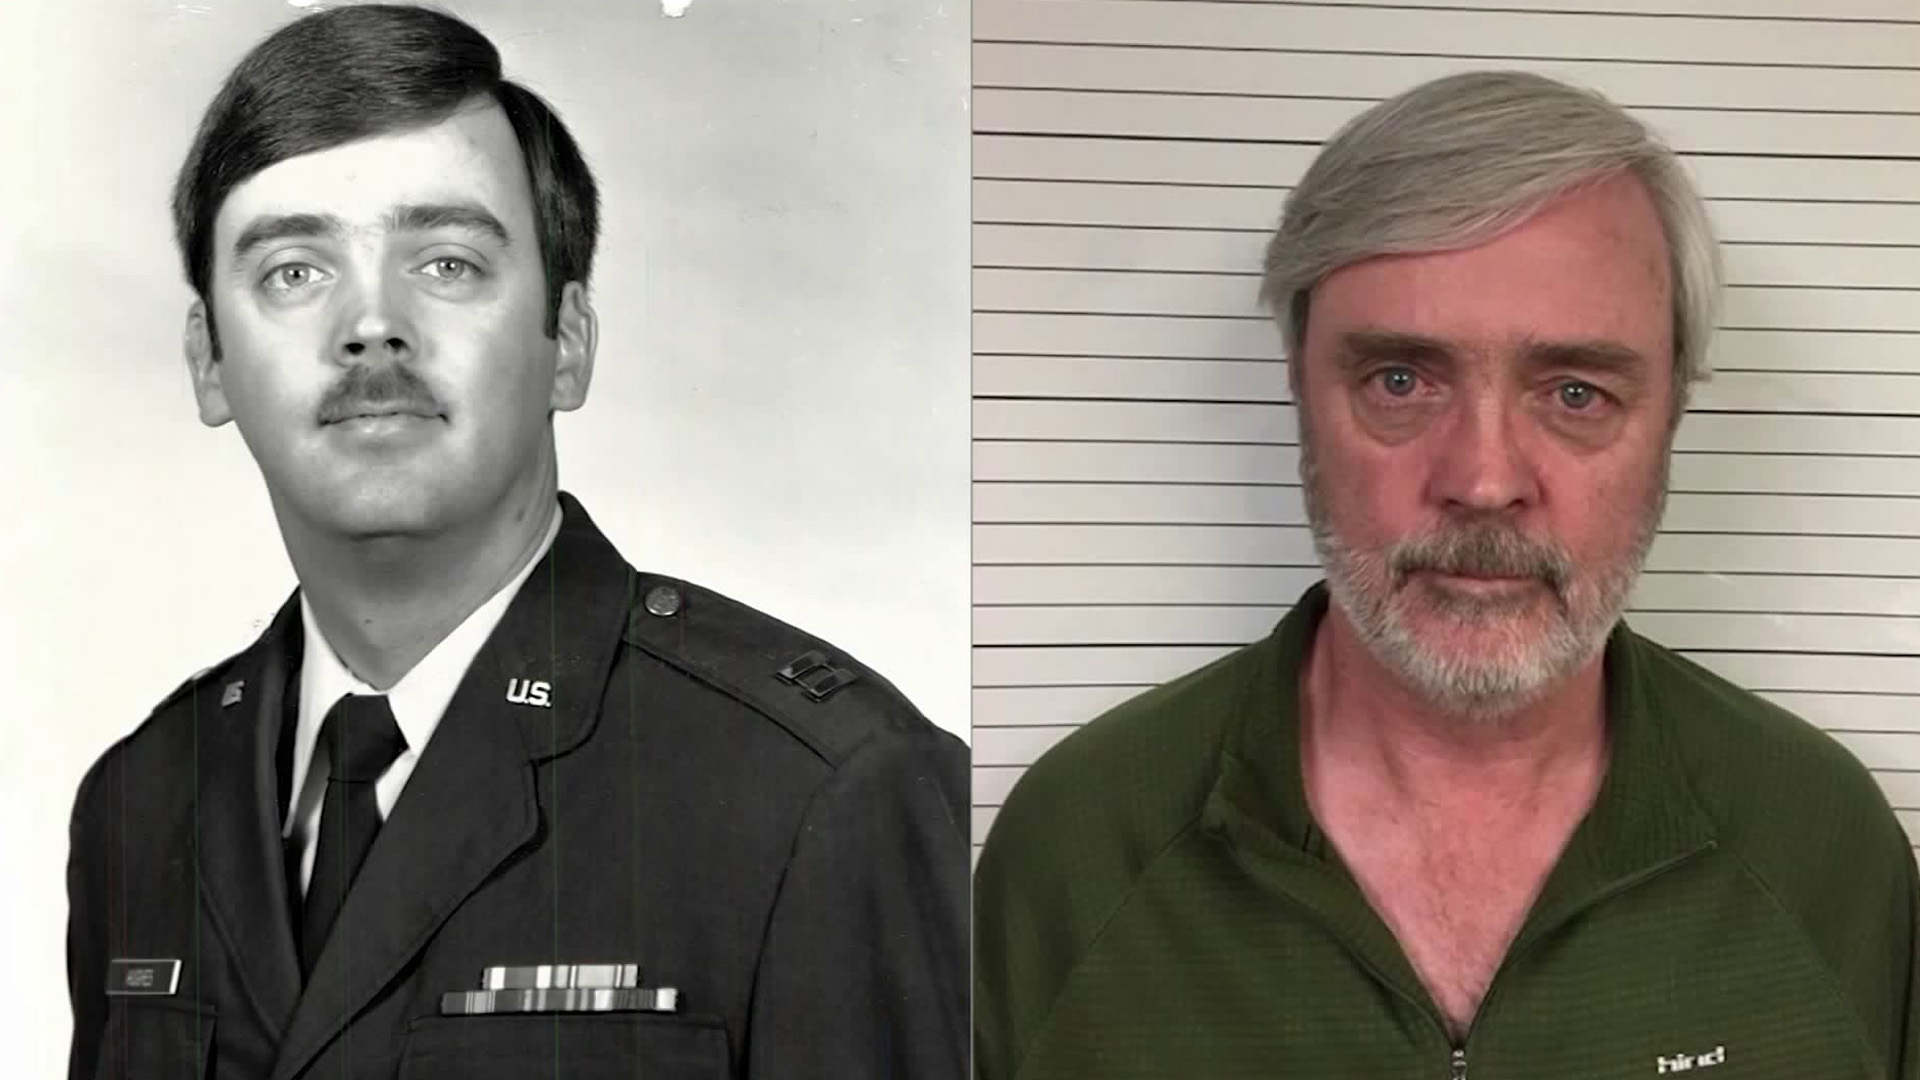 Air Force Capt. William Howard Hughes Jr. is seen in a decades-old official Air Force photo, left, and in a 2018 booking photo. (Credit: U.S Air Force)